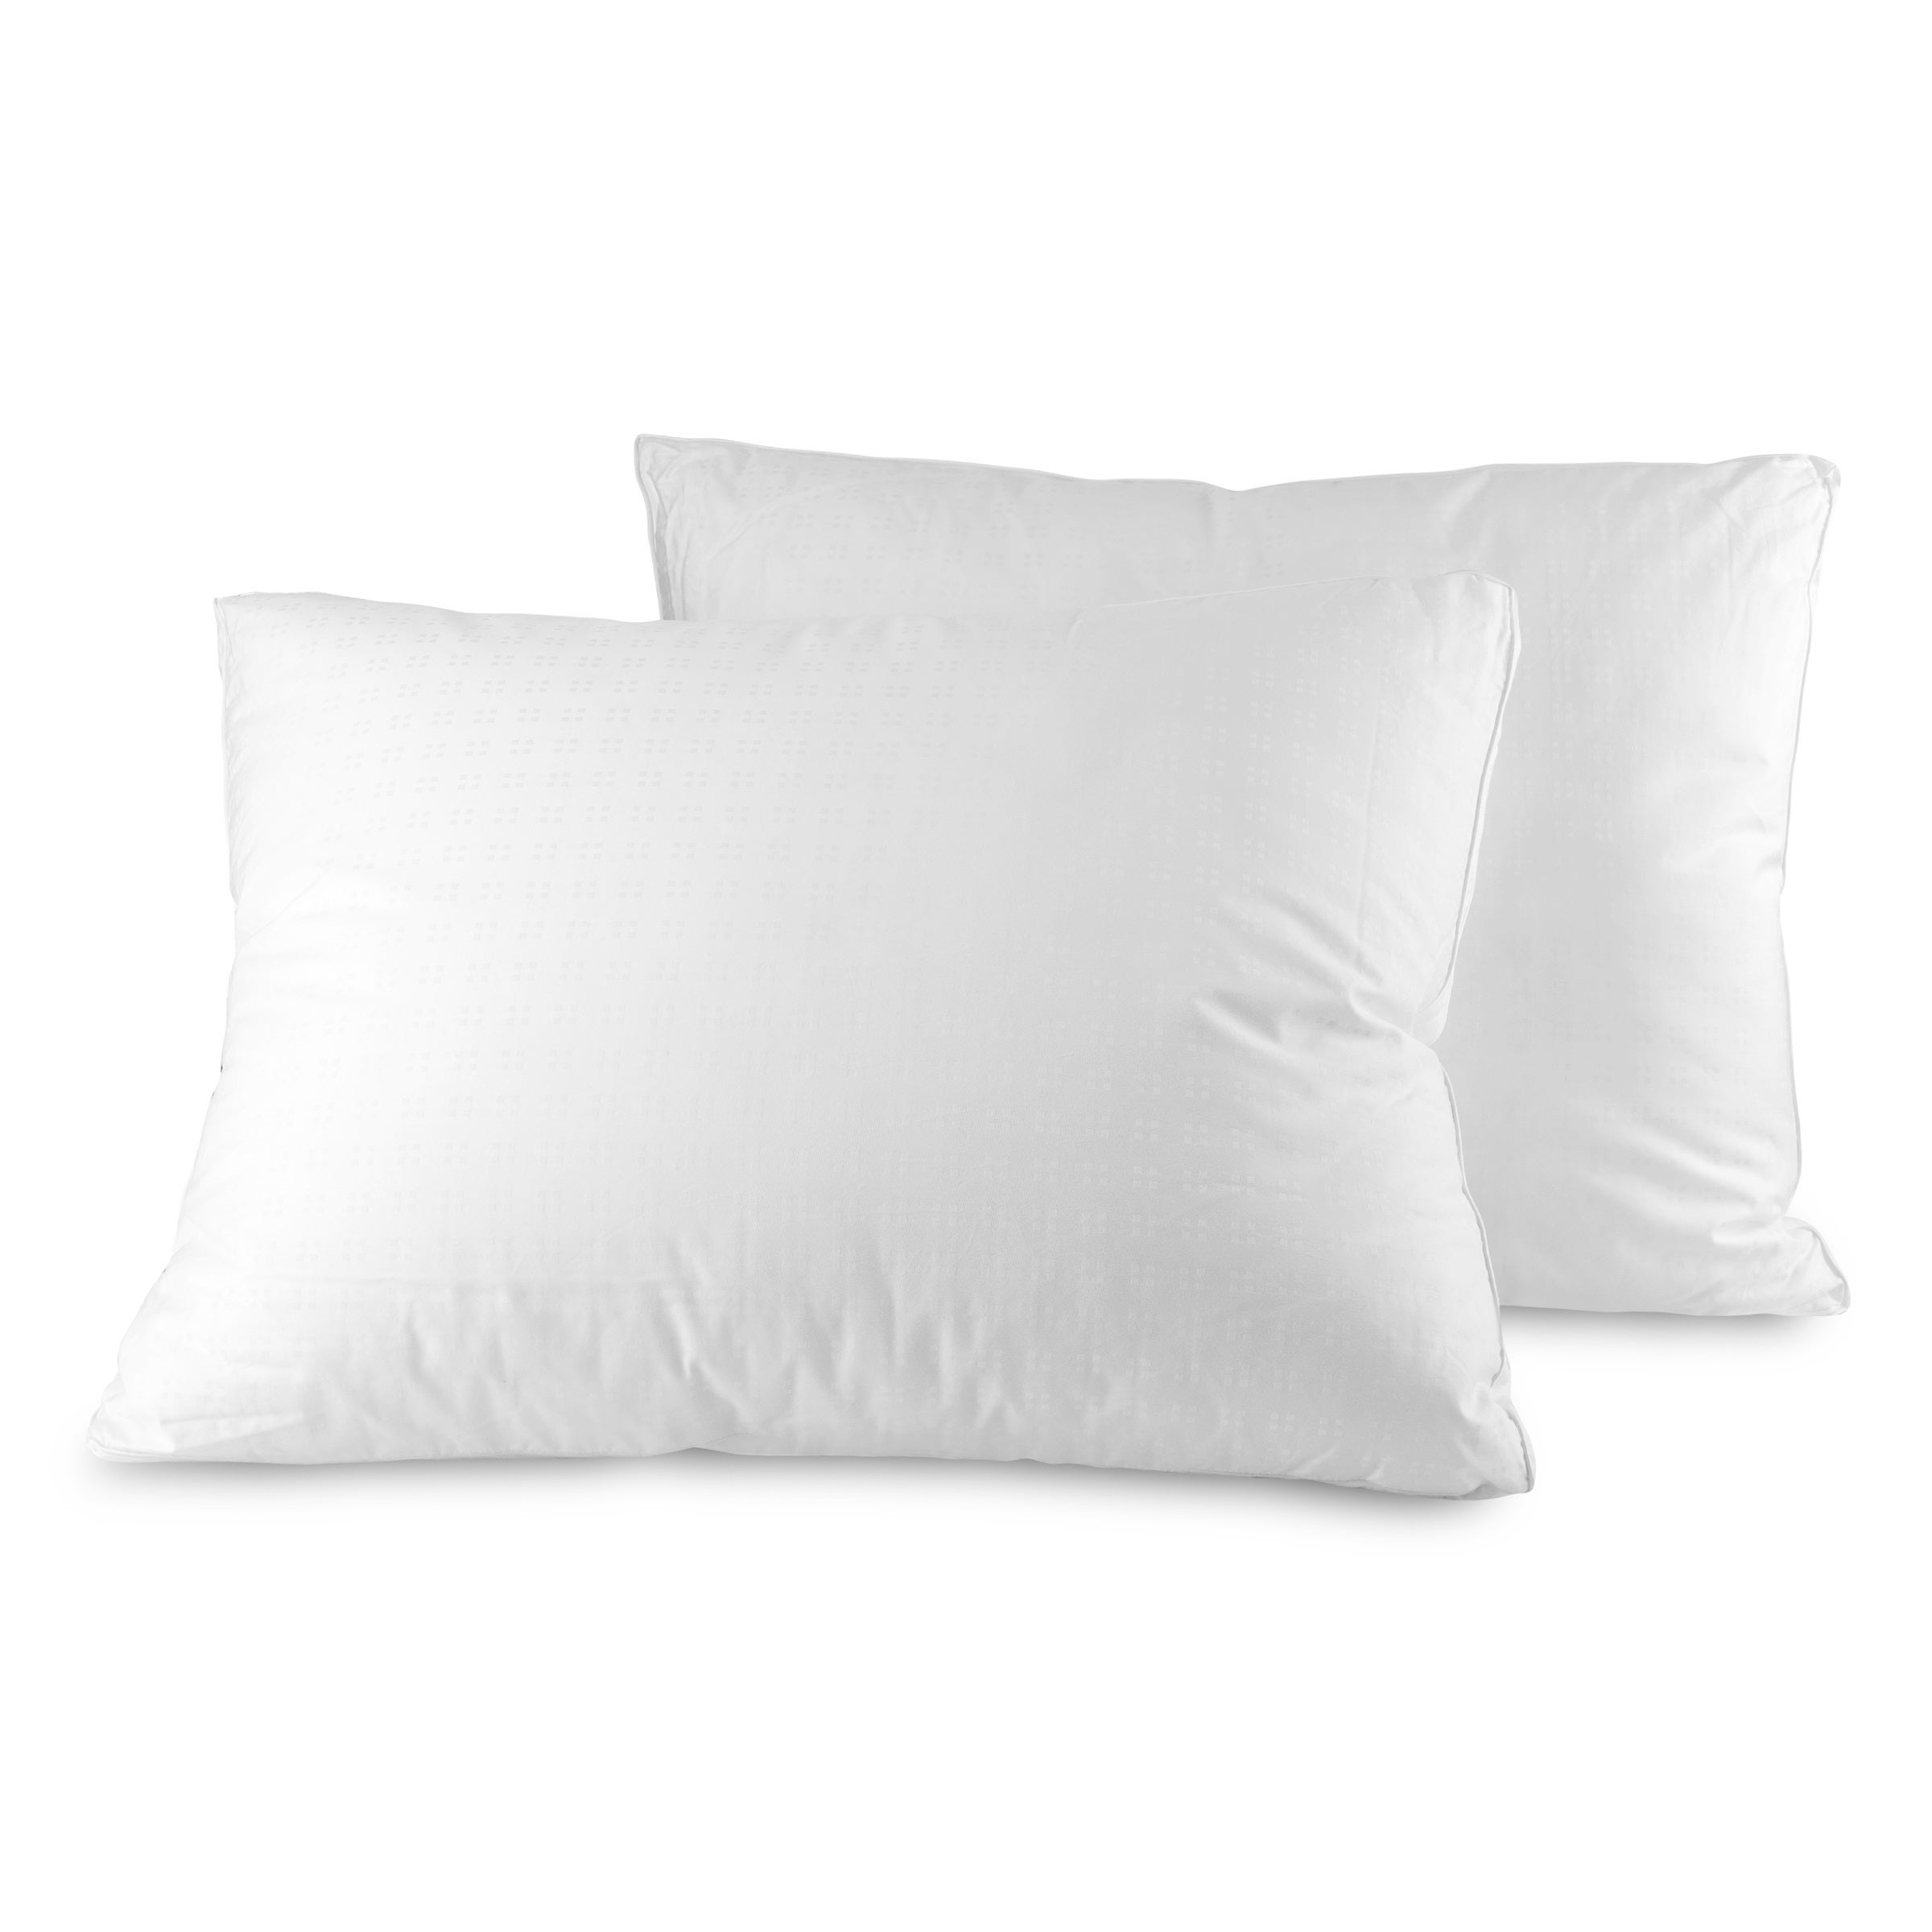 of popular pillow queen bedding size bed and ideas pic double vs full guide uncategorized appealing imgid pacific coast